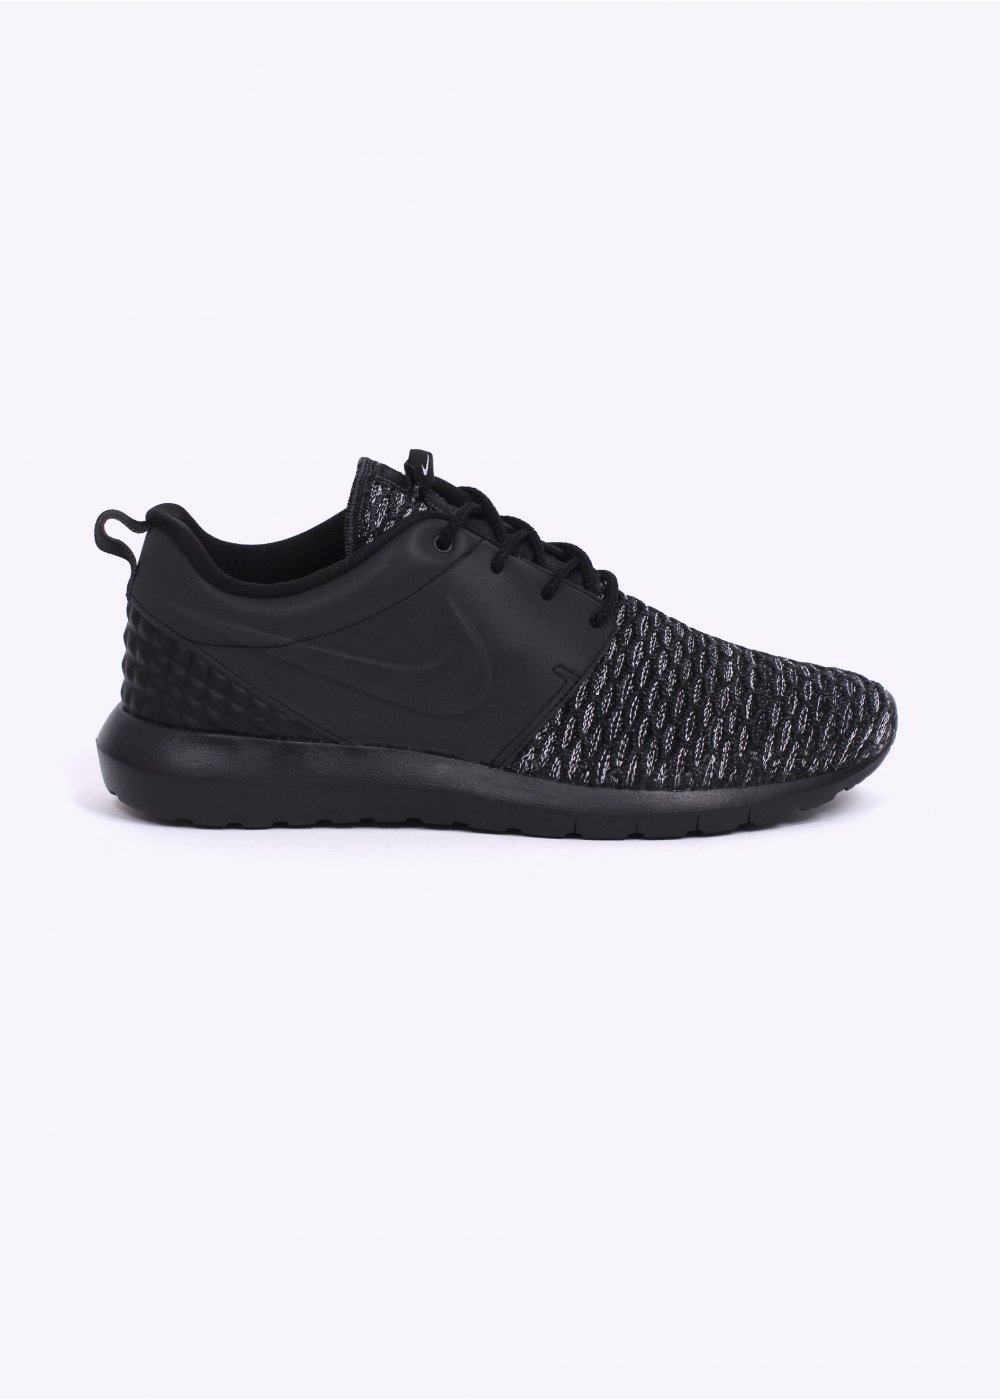 half off 6d4ec 7e8f5 Roshe One Flyknit Premium Trainers - Black   Dark Grey